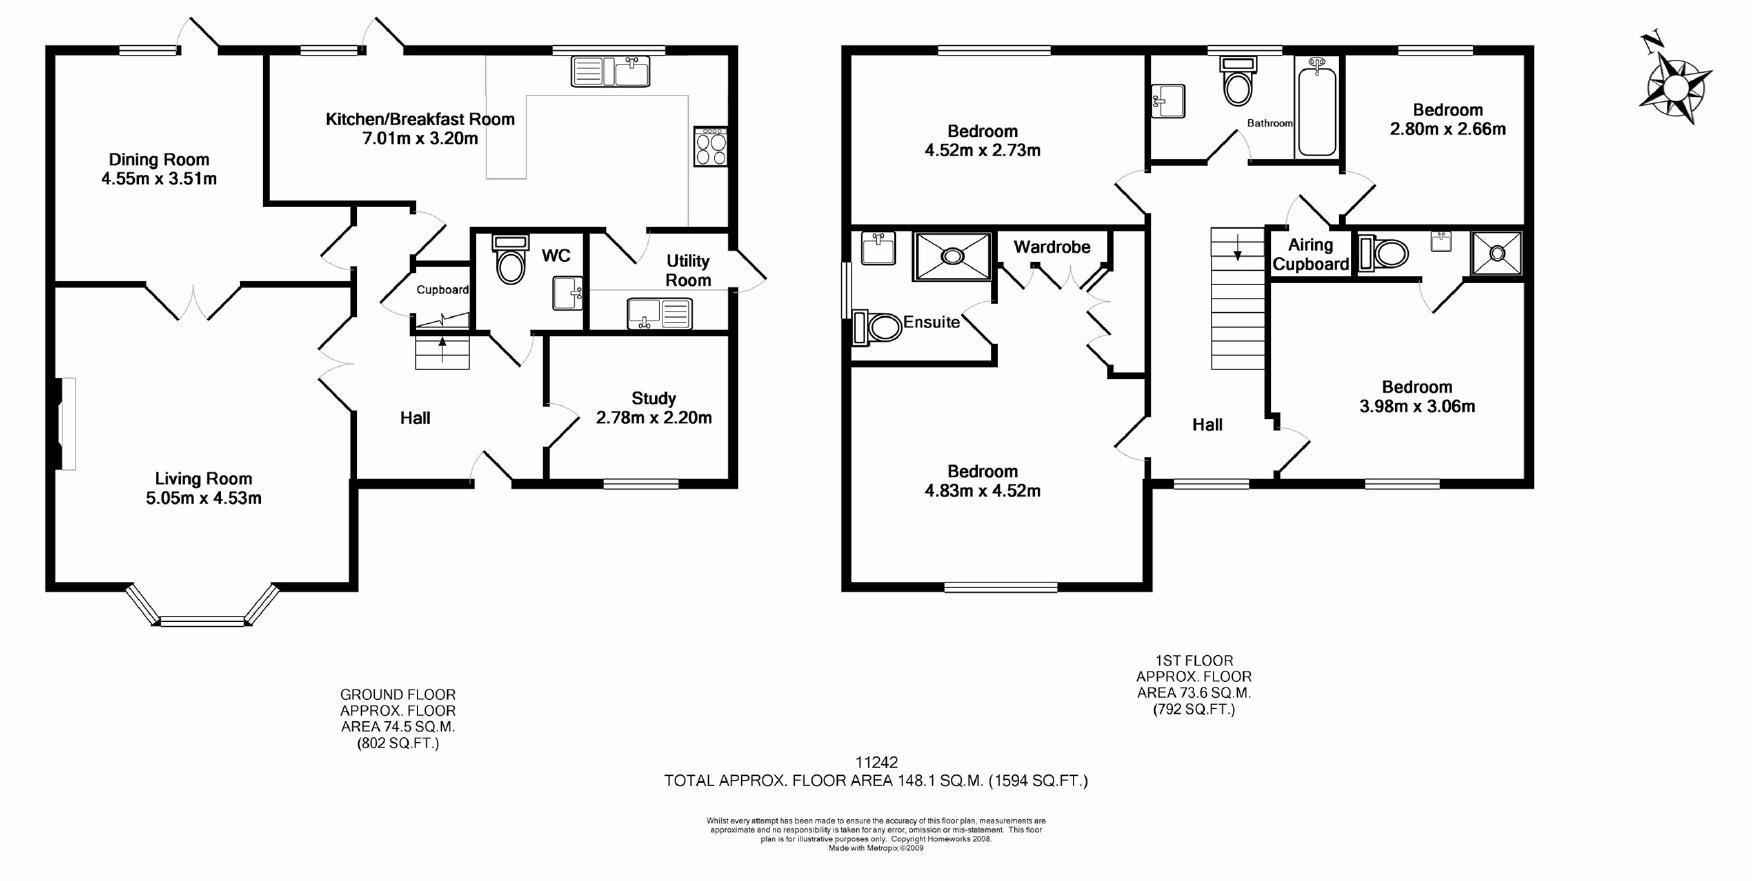 Booth road hanwell fields ox16 ref 11242 banbury for Uk house floor plans